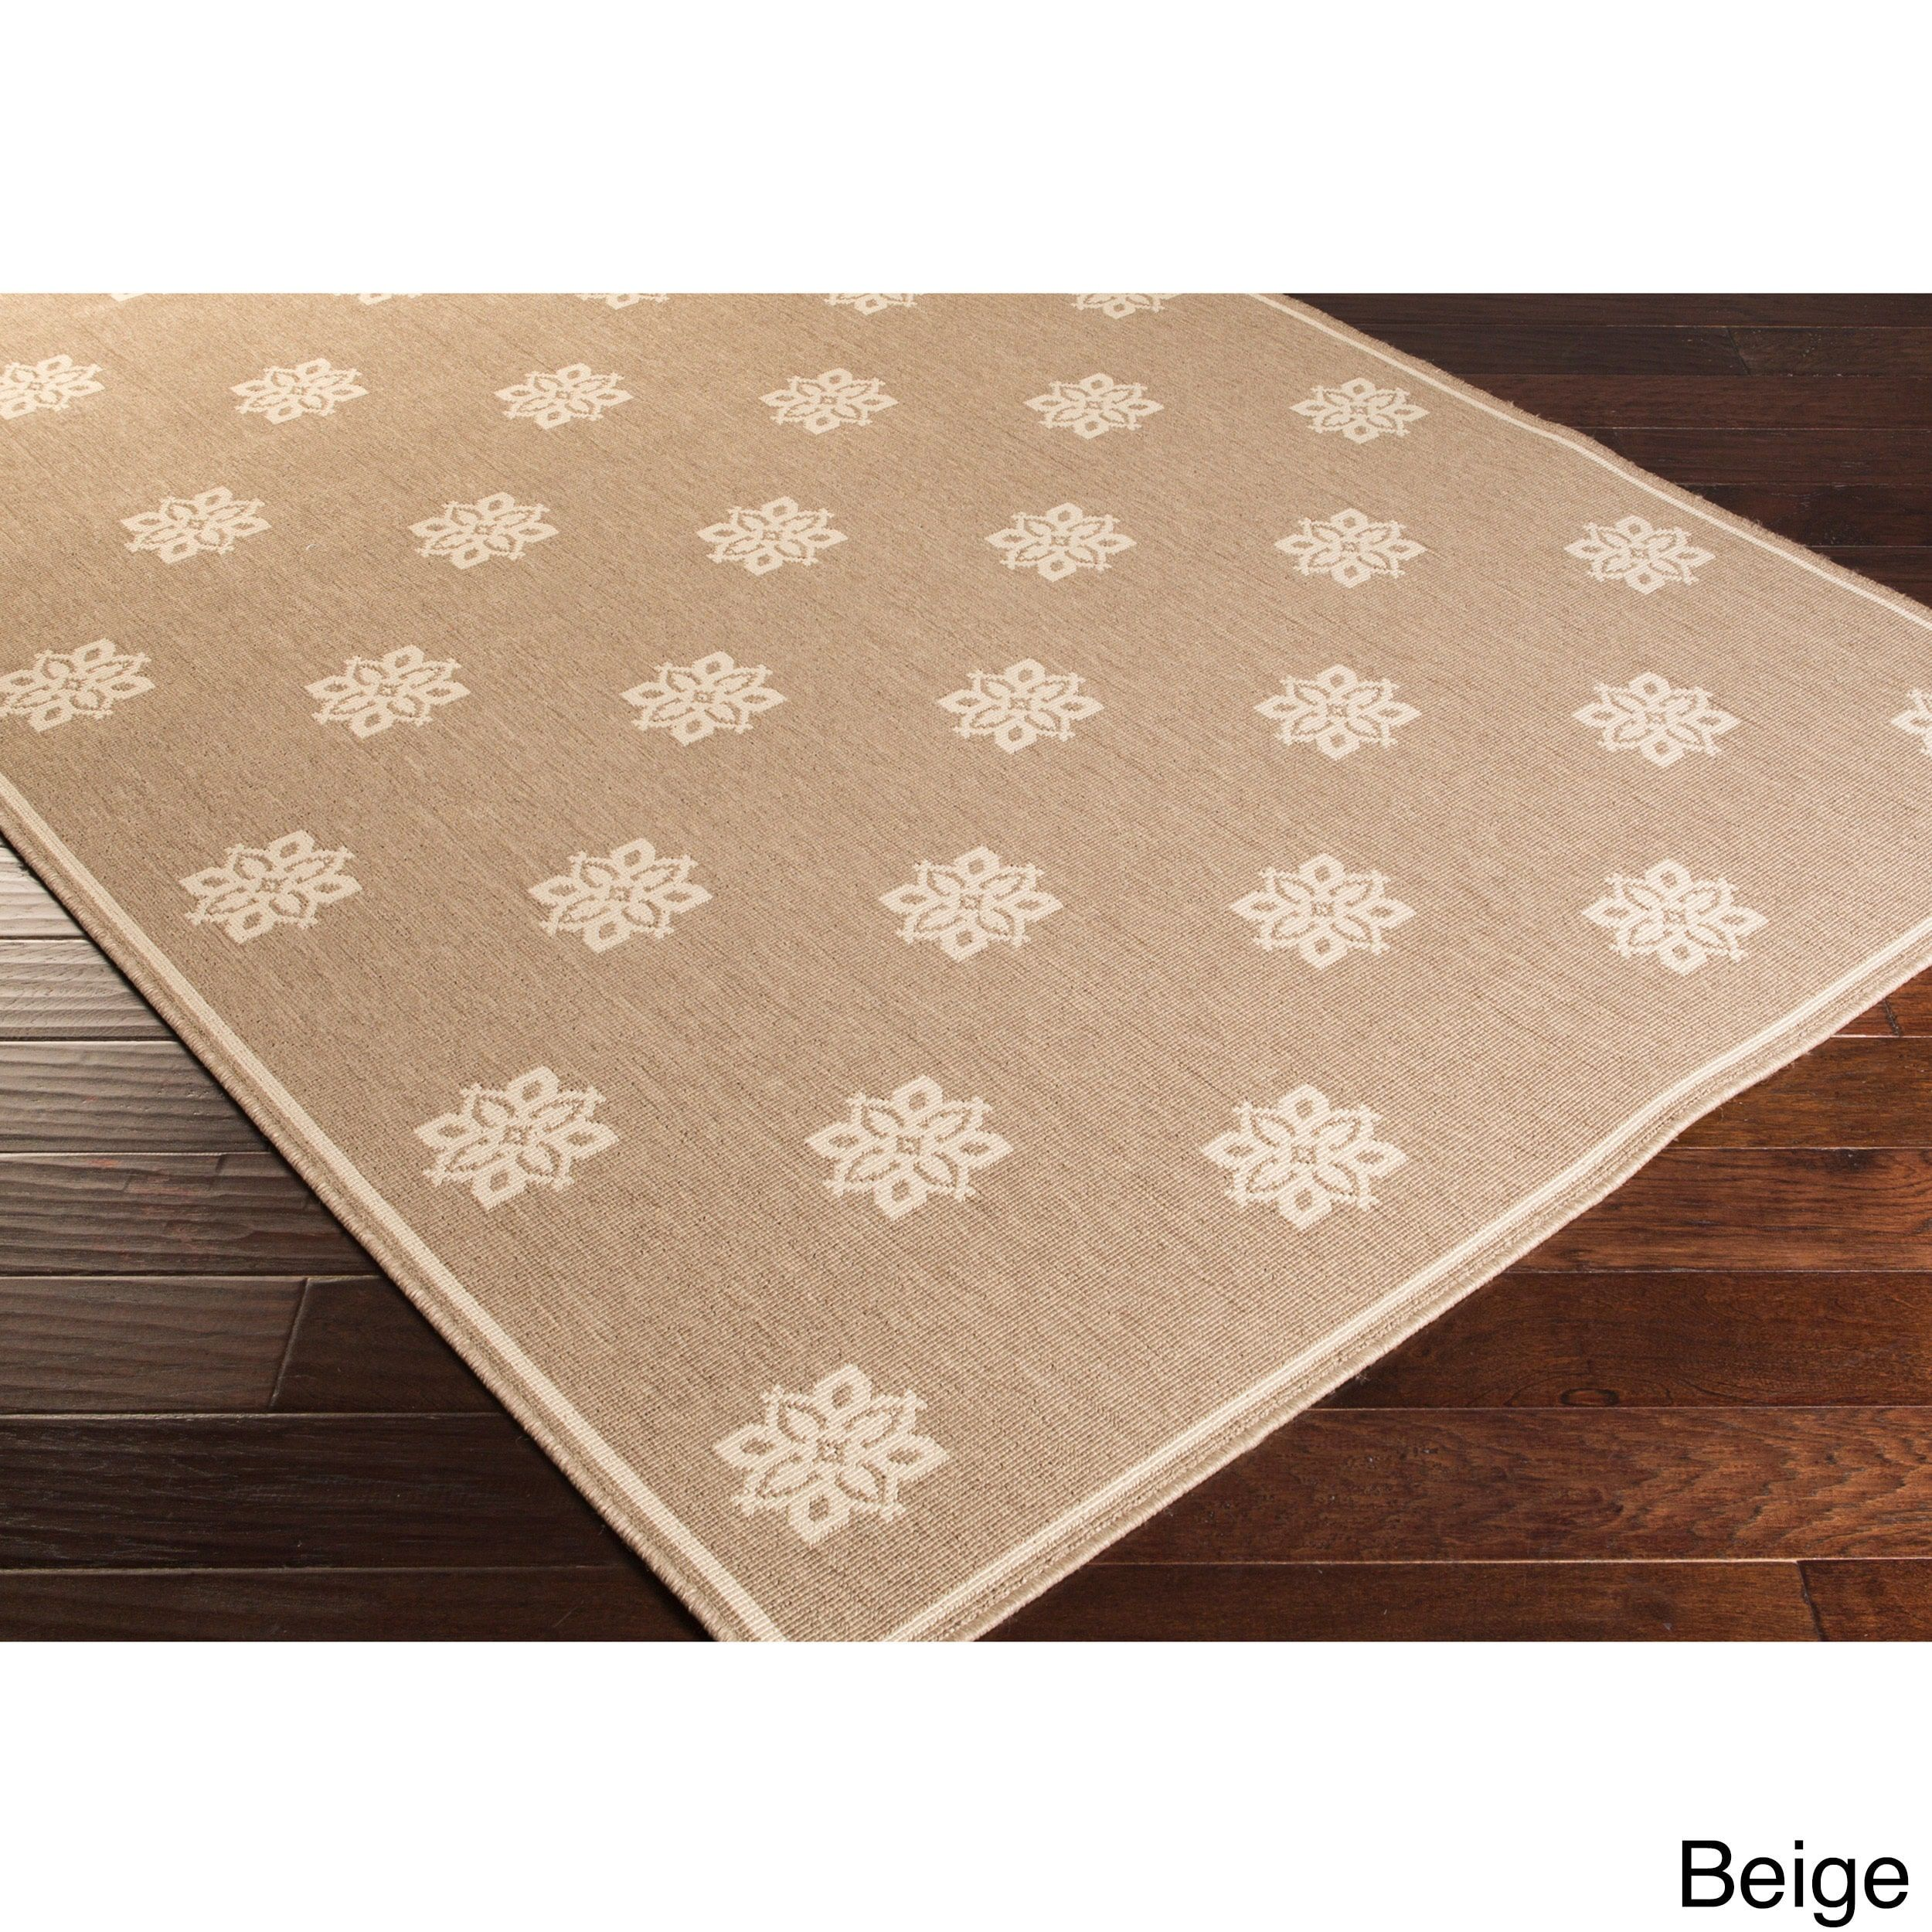 Meticulously Woven Jenna Contemporary Floral Indoor Outdoor Area Rug